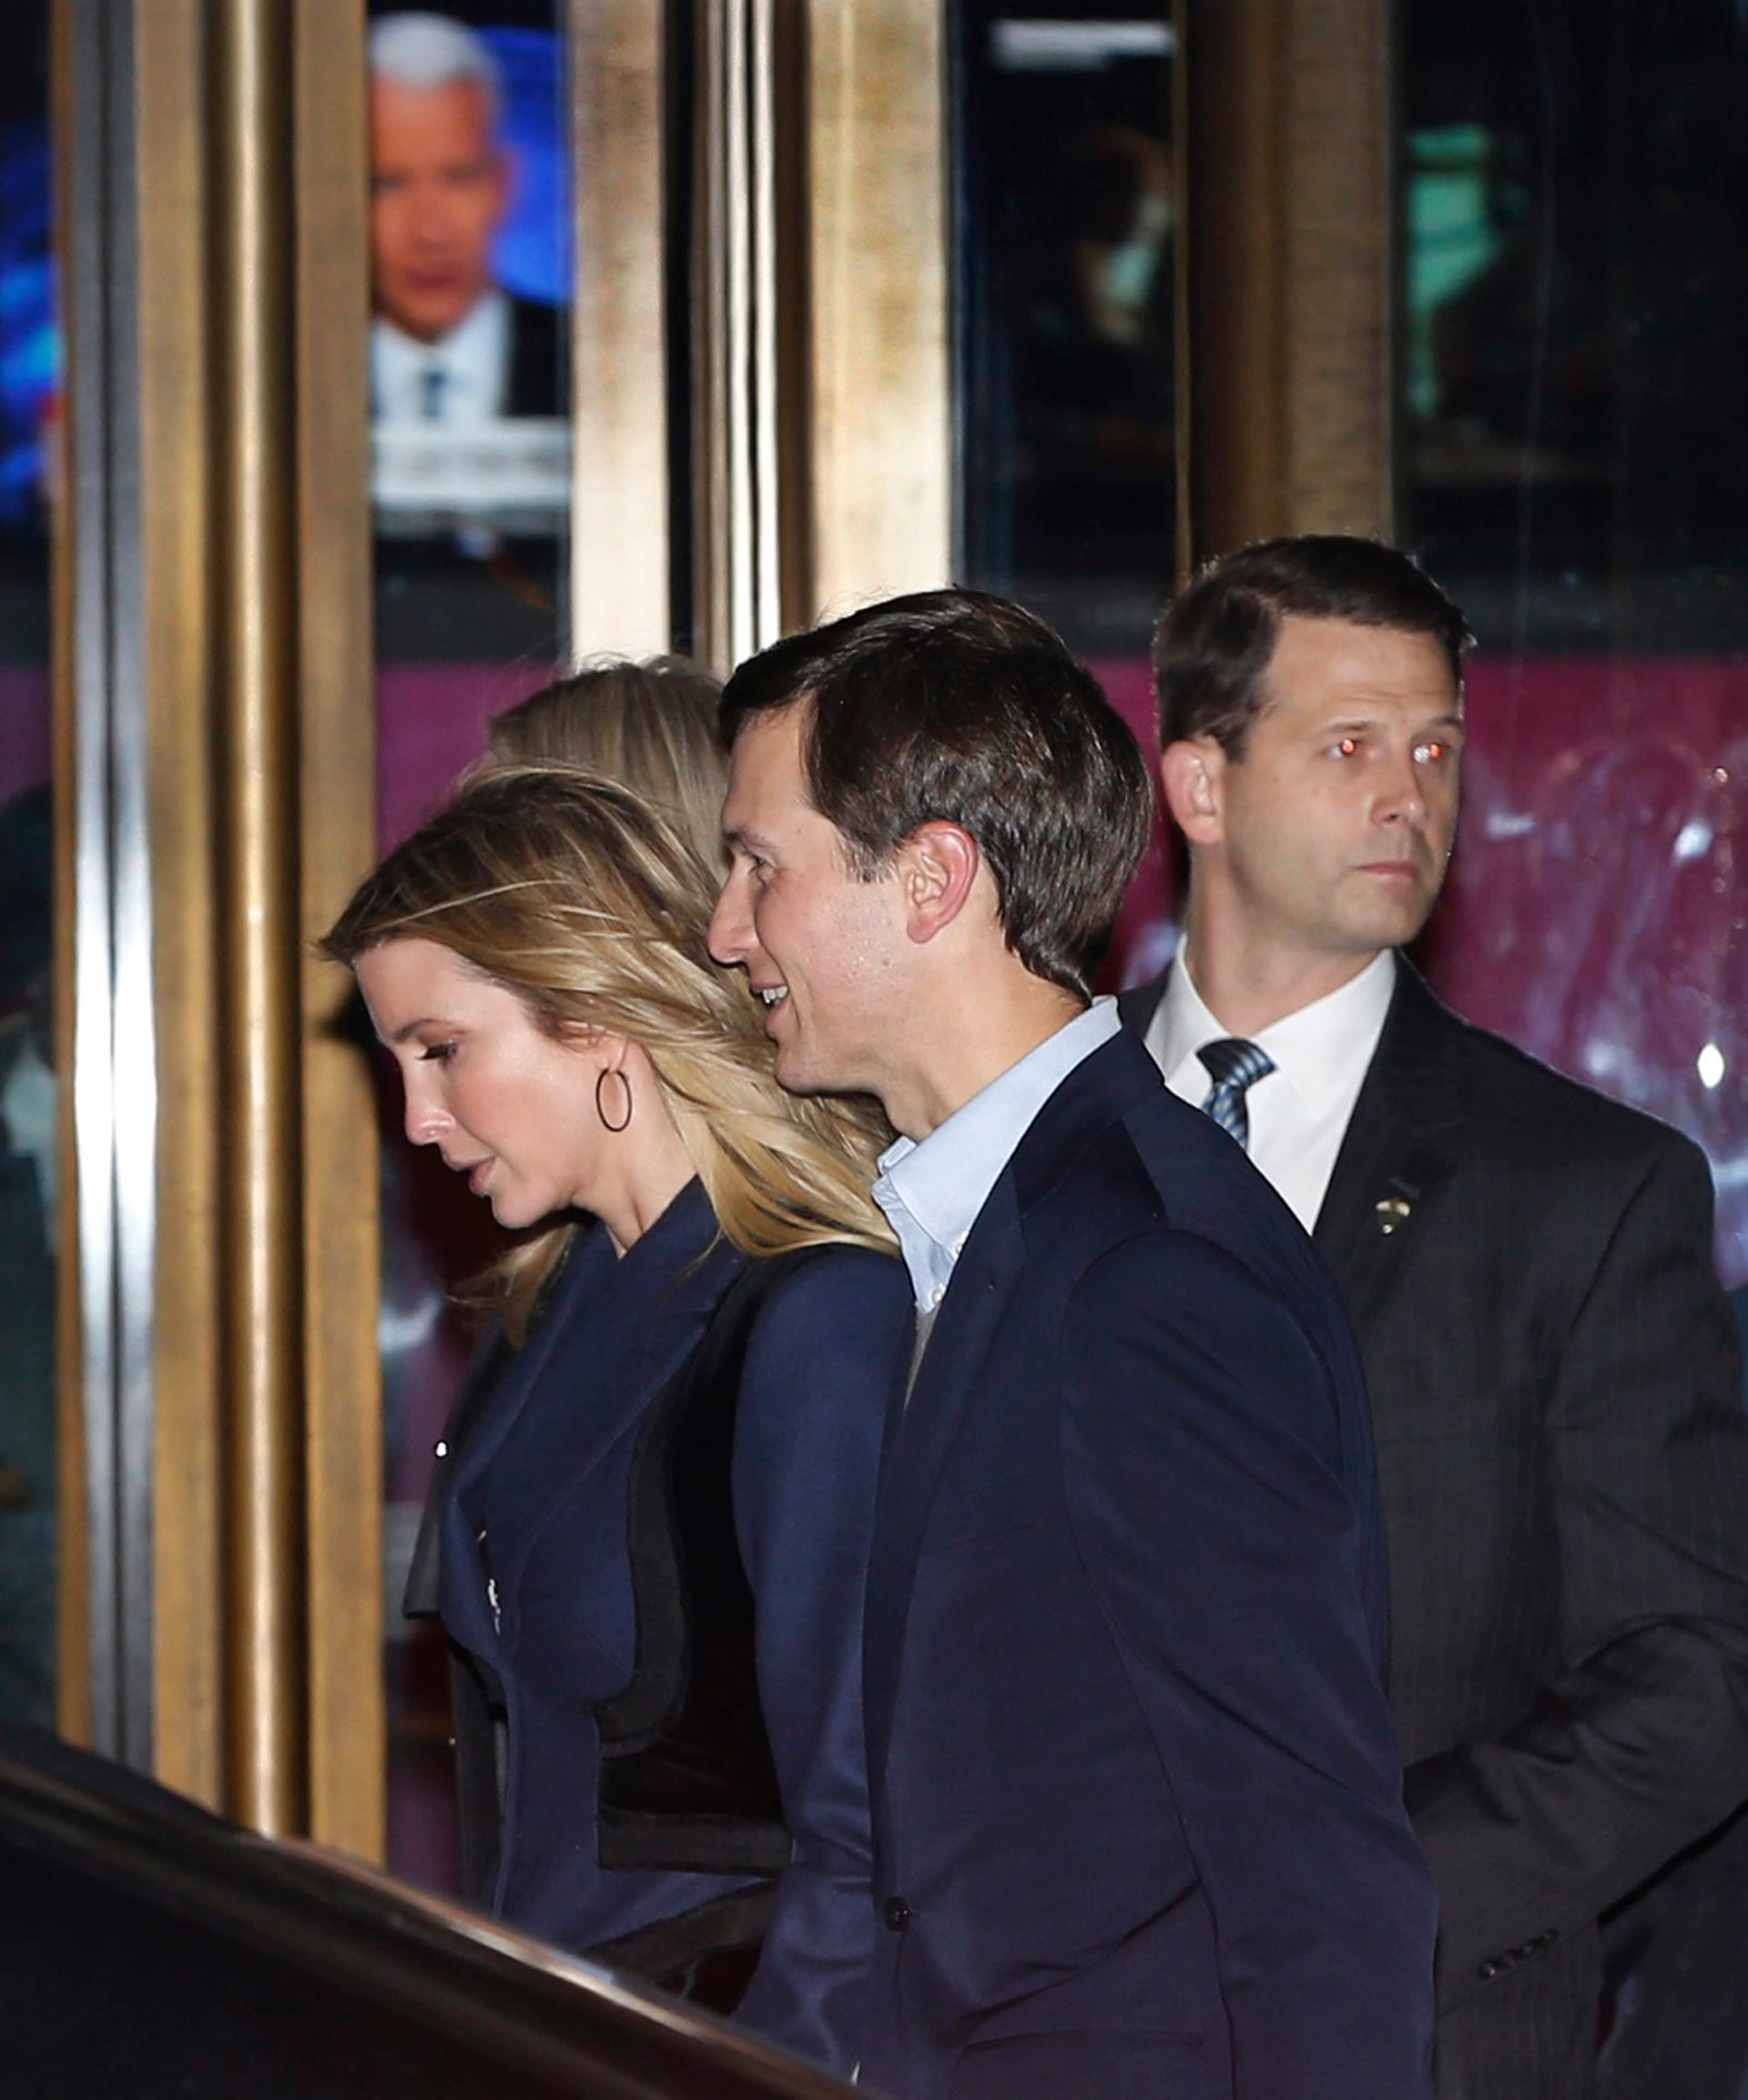 Ivanka Trump and her husband Jared Kushner leave the 21 Club after dining with President-elect Donald Trump on Tuesday, Nov. 15, 2016, in New York.